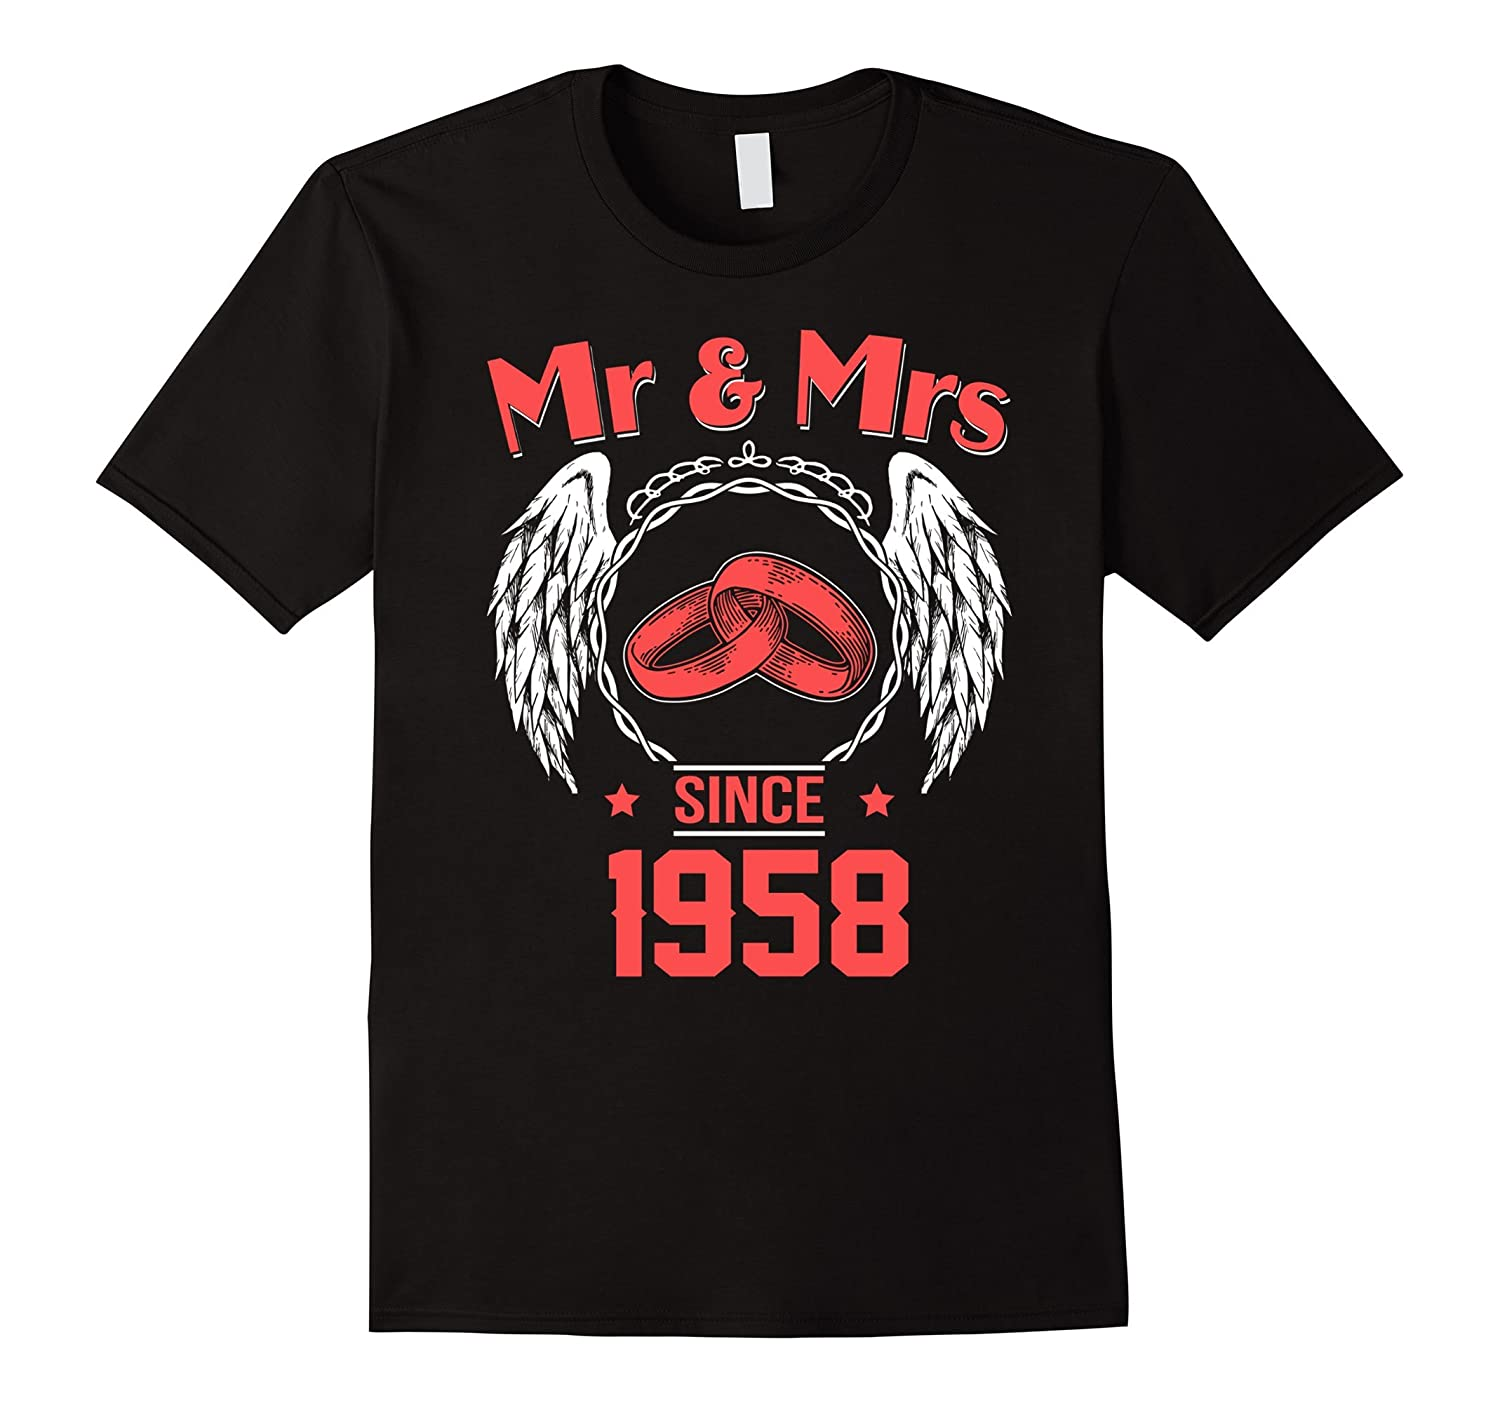 Wedding Gifts For Spouse: 59th Wedding Anniversary Gifts T Shirts For Husband For